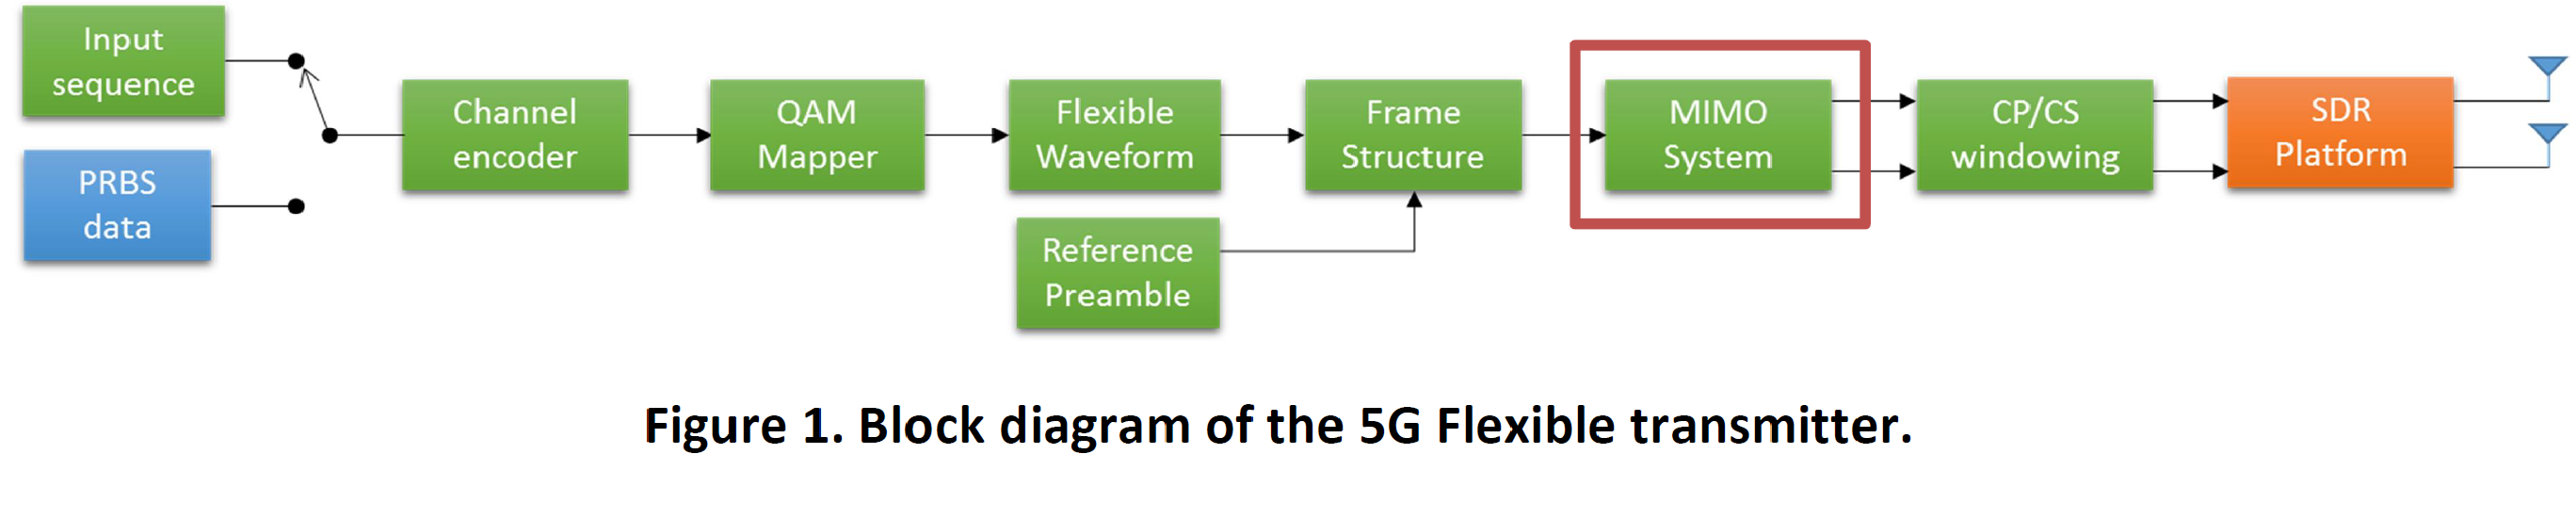 Github Ewine Project 5g Flexible Transceiver For Physical Layer Figure 1 Transmitter Block Diagram Alt Text